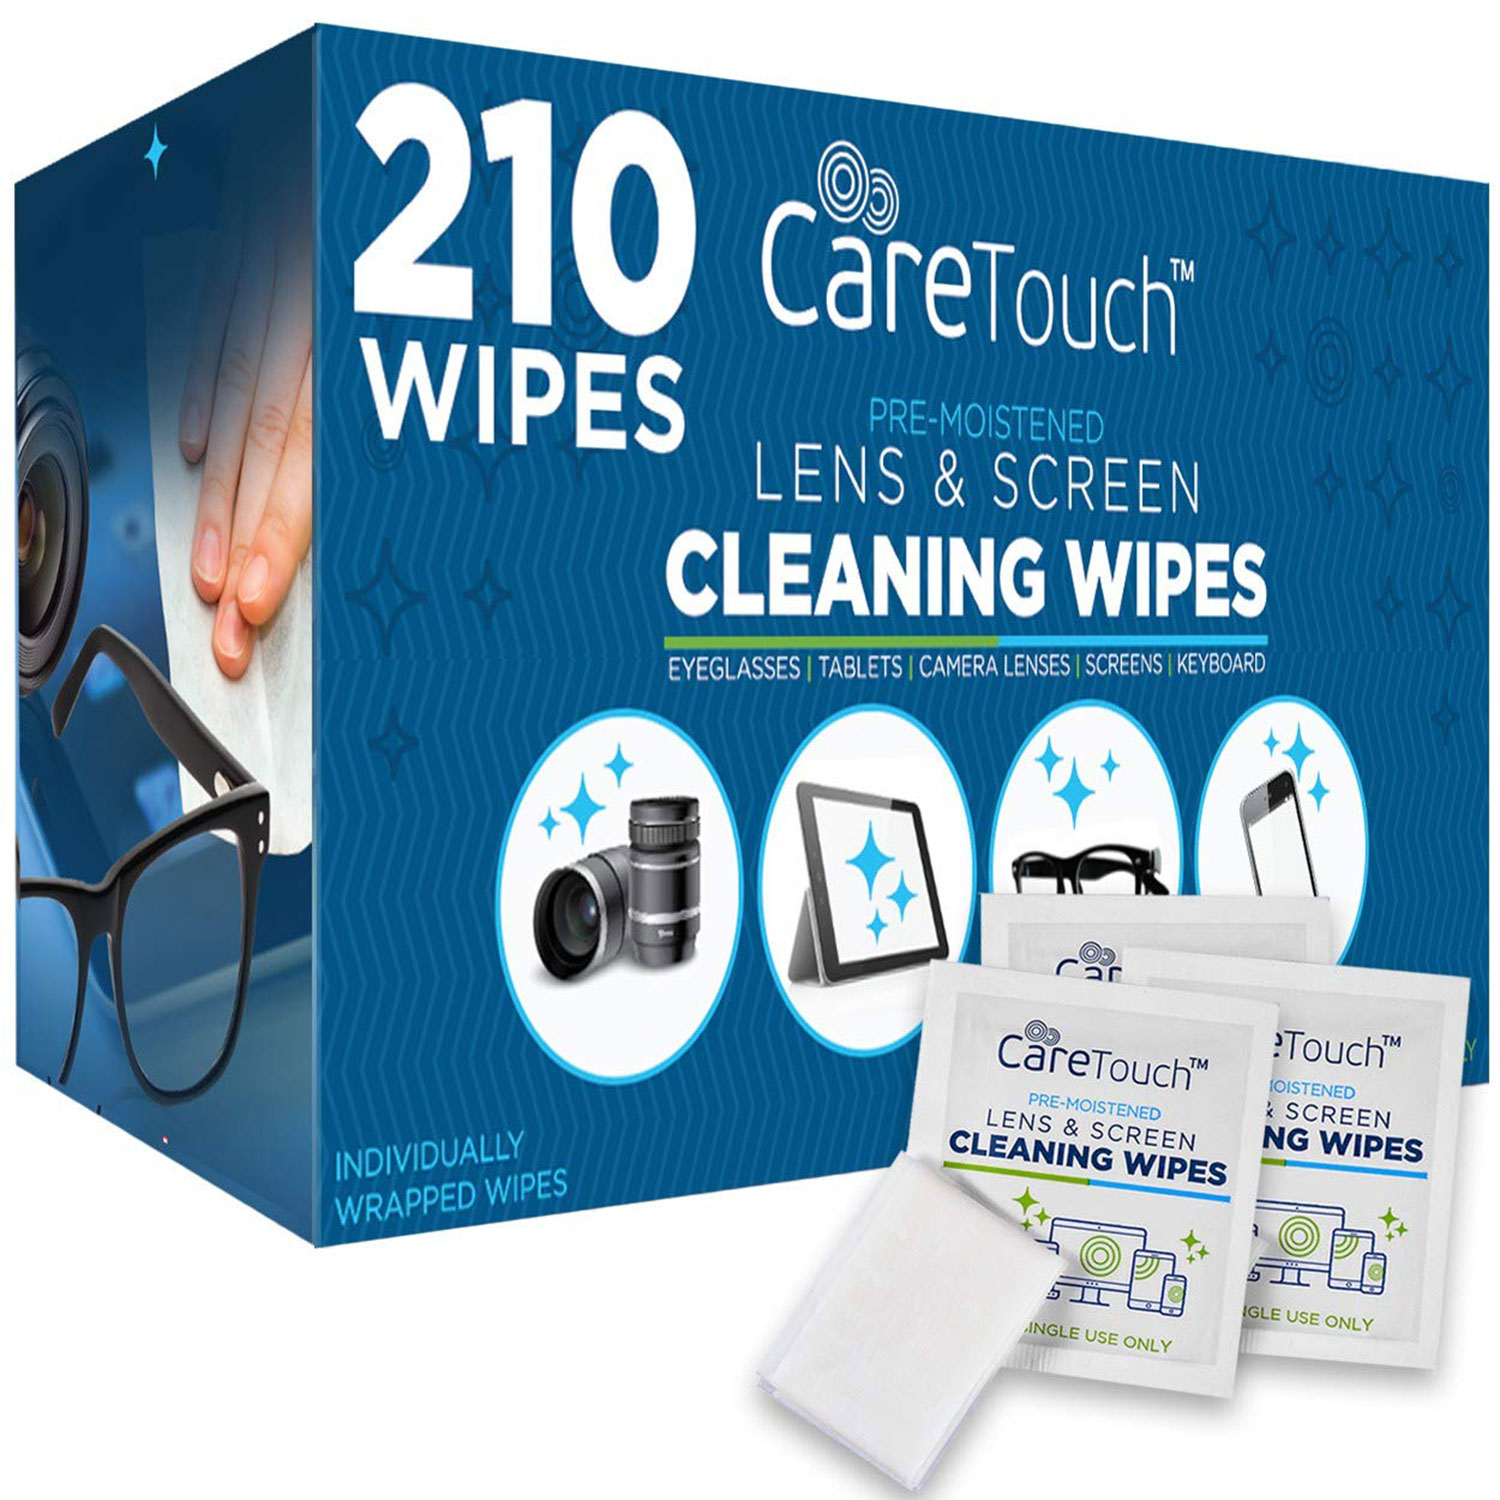 Care Touch Lens Cleaning Wipes, Pre Moistened Cleansing Cloths